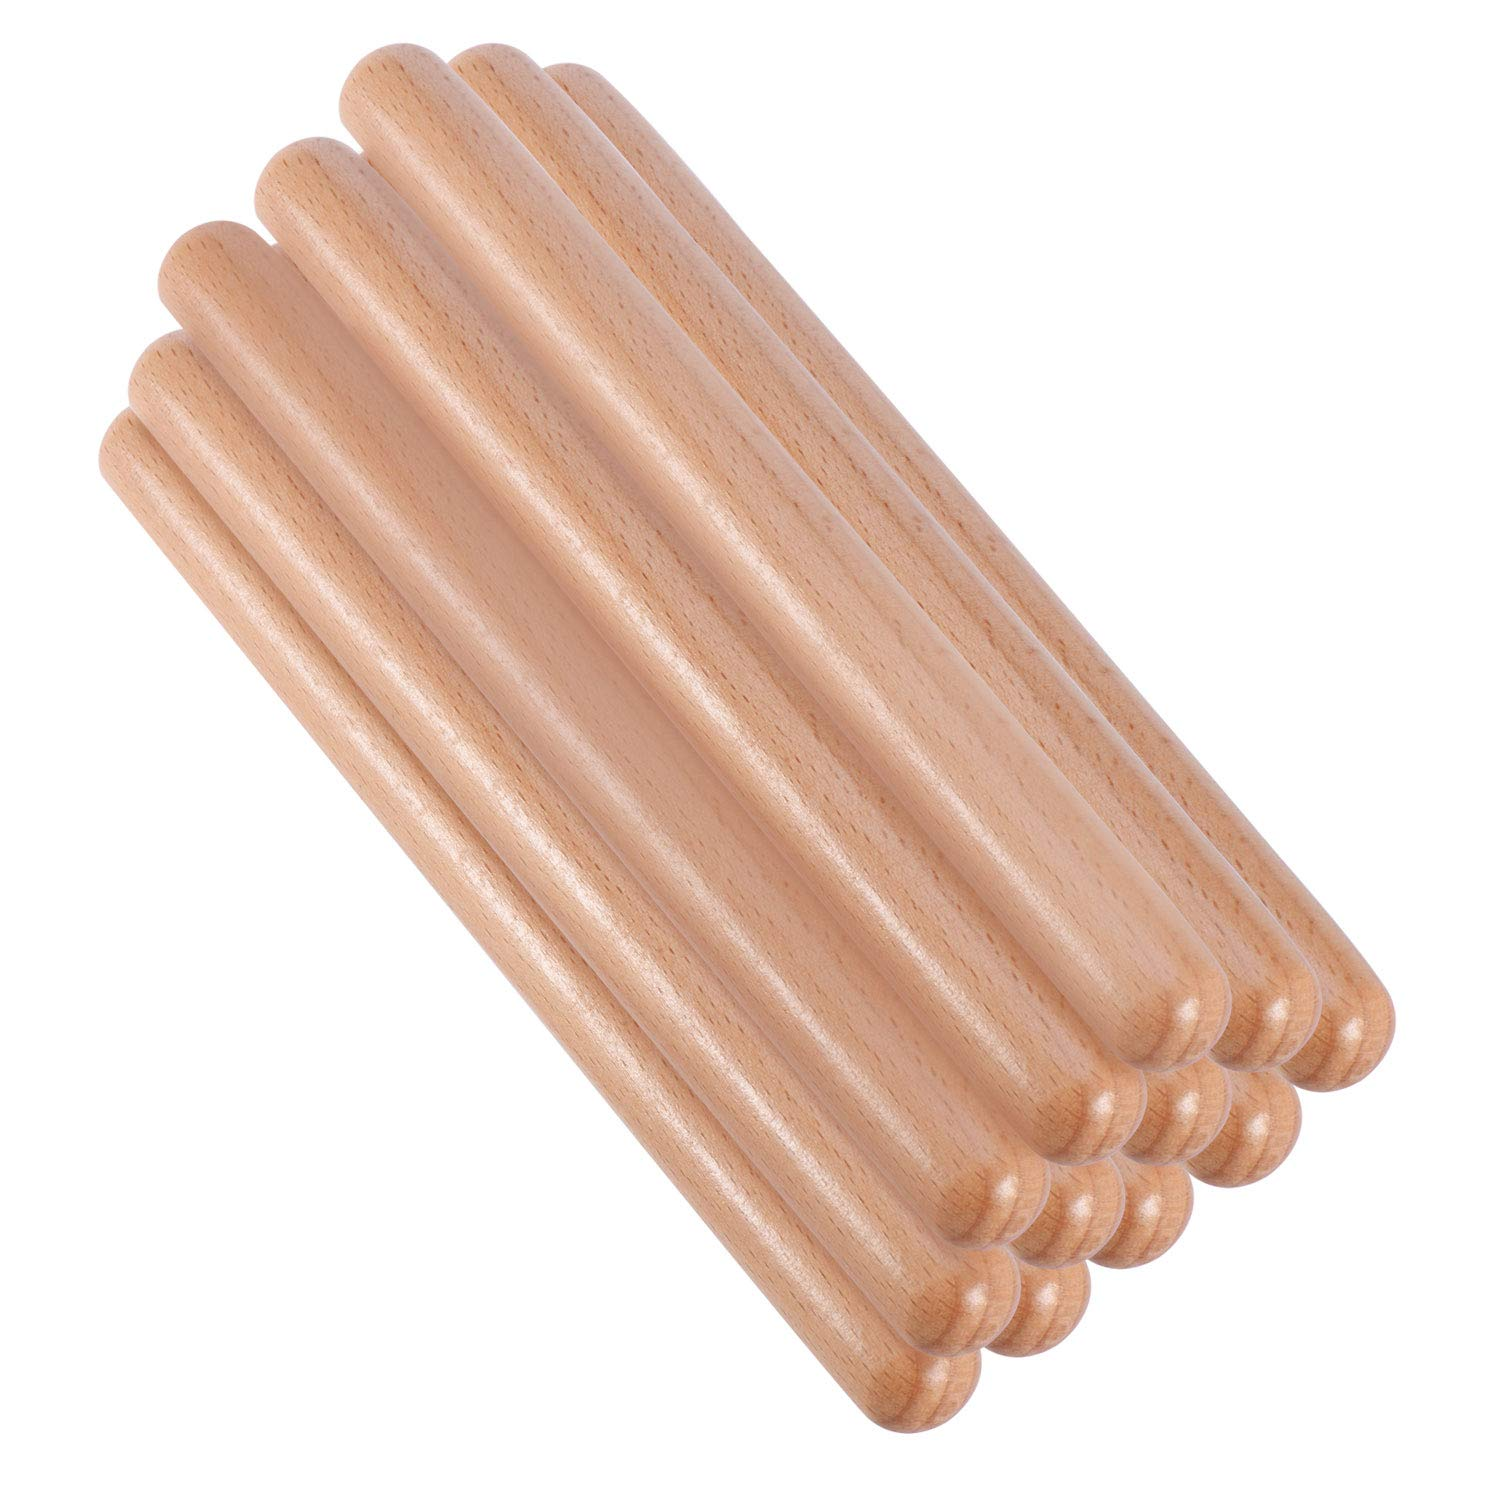 Canomo 6 Pairs (12 Packs) Rhythm Music Sticks 8 Inch Classical Solid Hardwood Claves Percussion Instrument with a Carry Bag for The Young Musicians(Natural Wood Color) by canomo